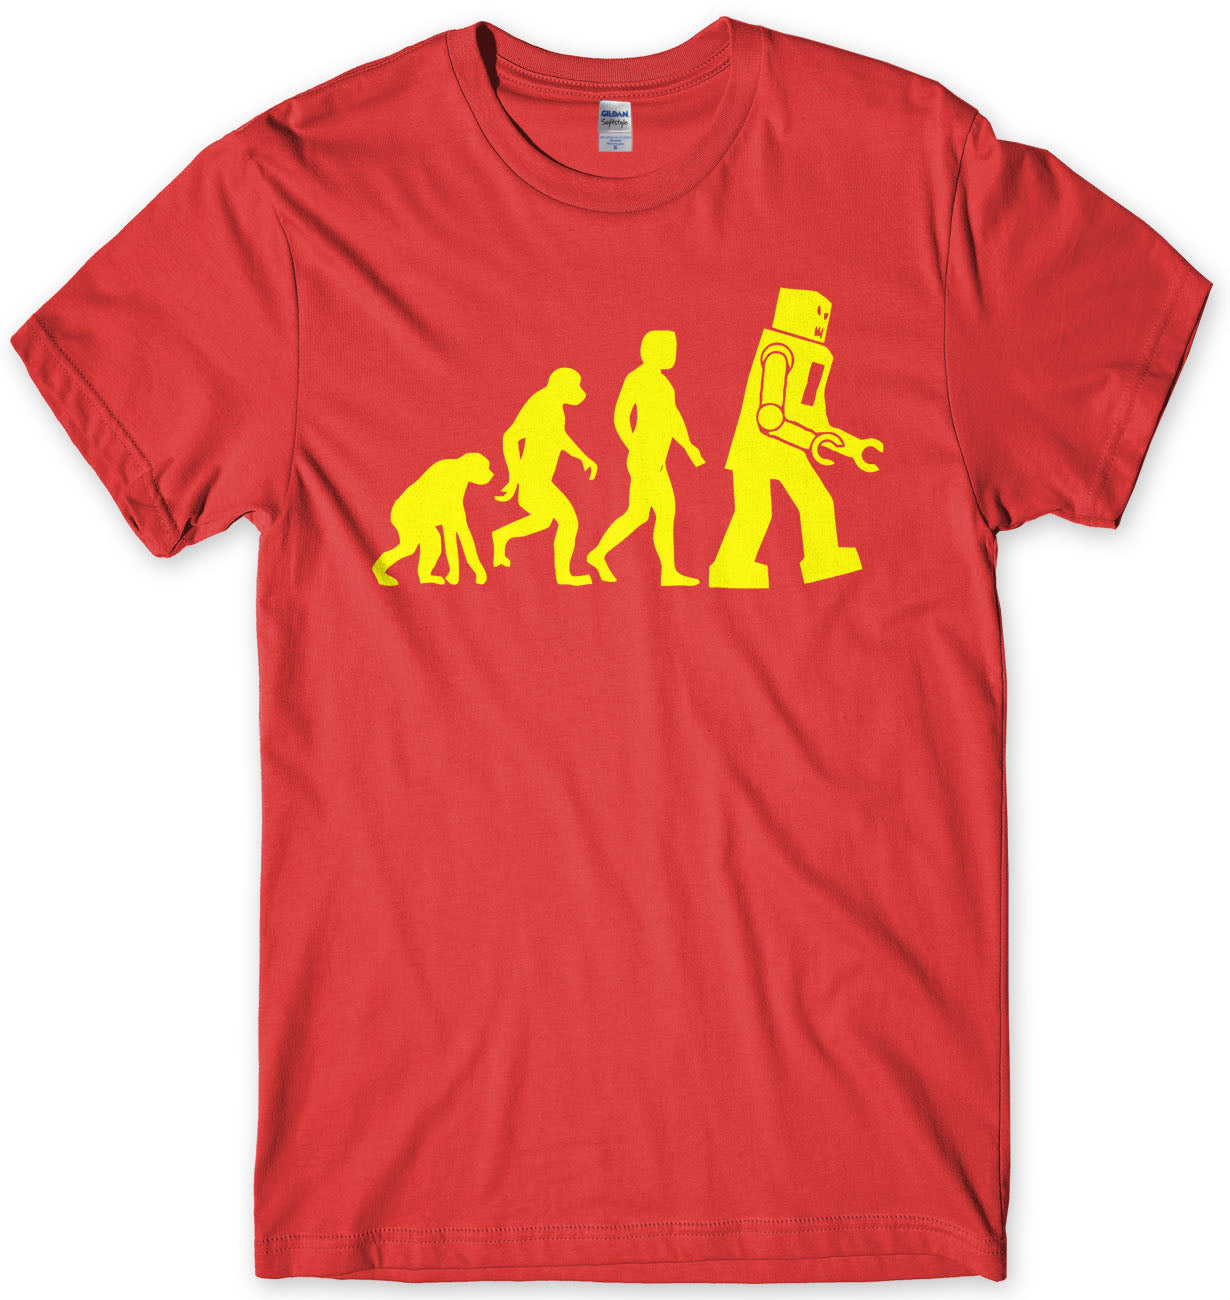 Evolution Of Robot Sheldon Cooper Inspired T-Shirt